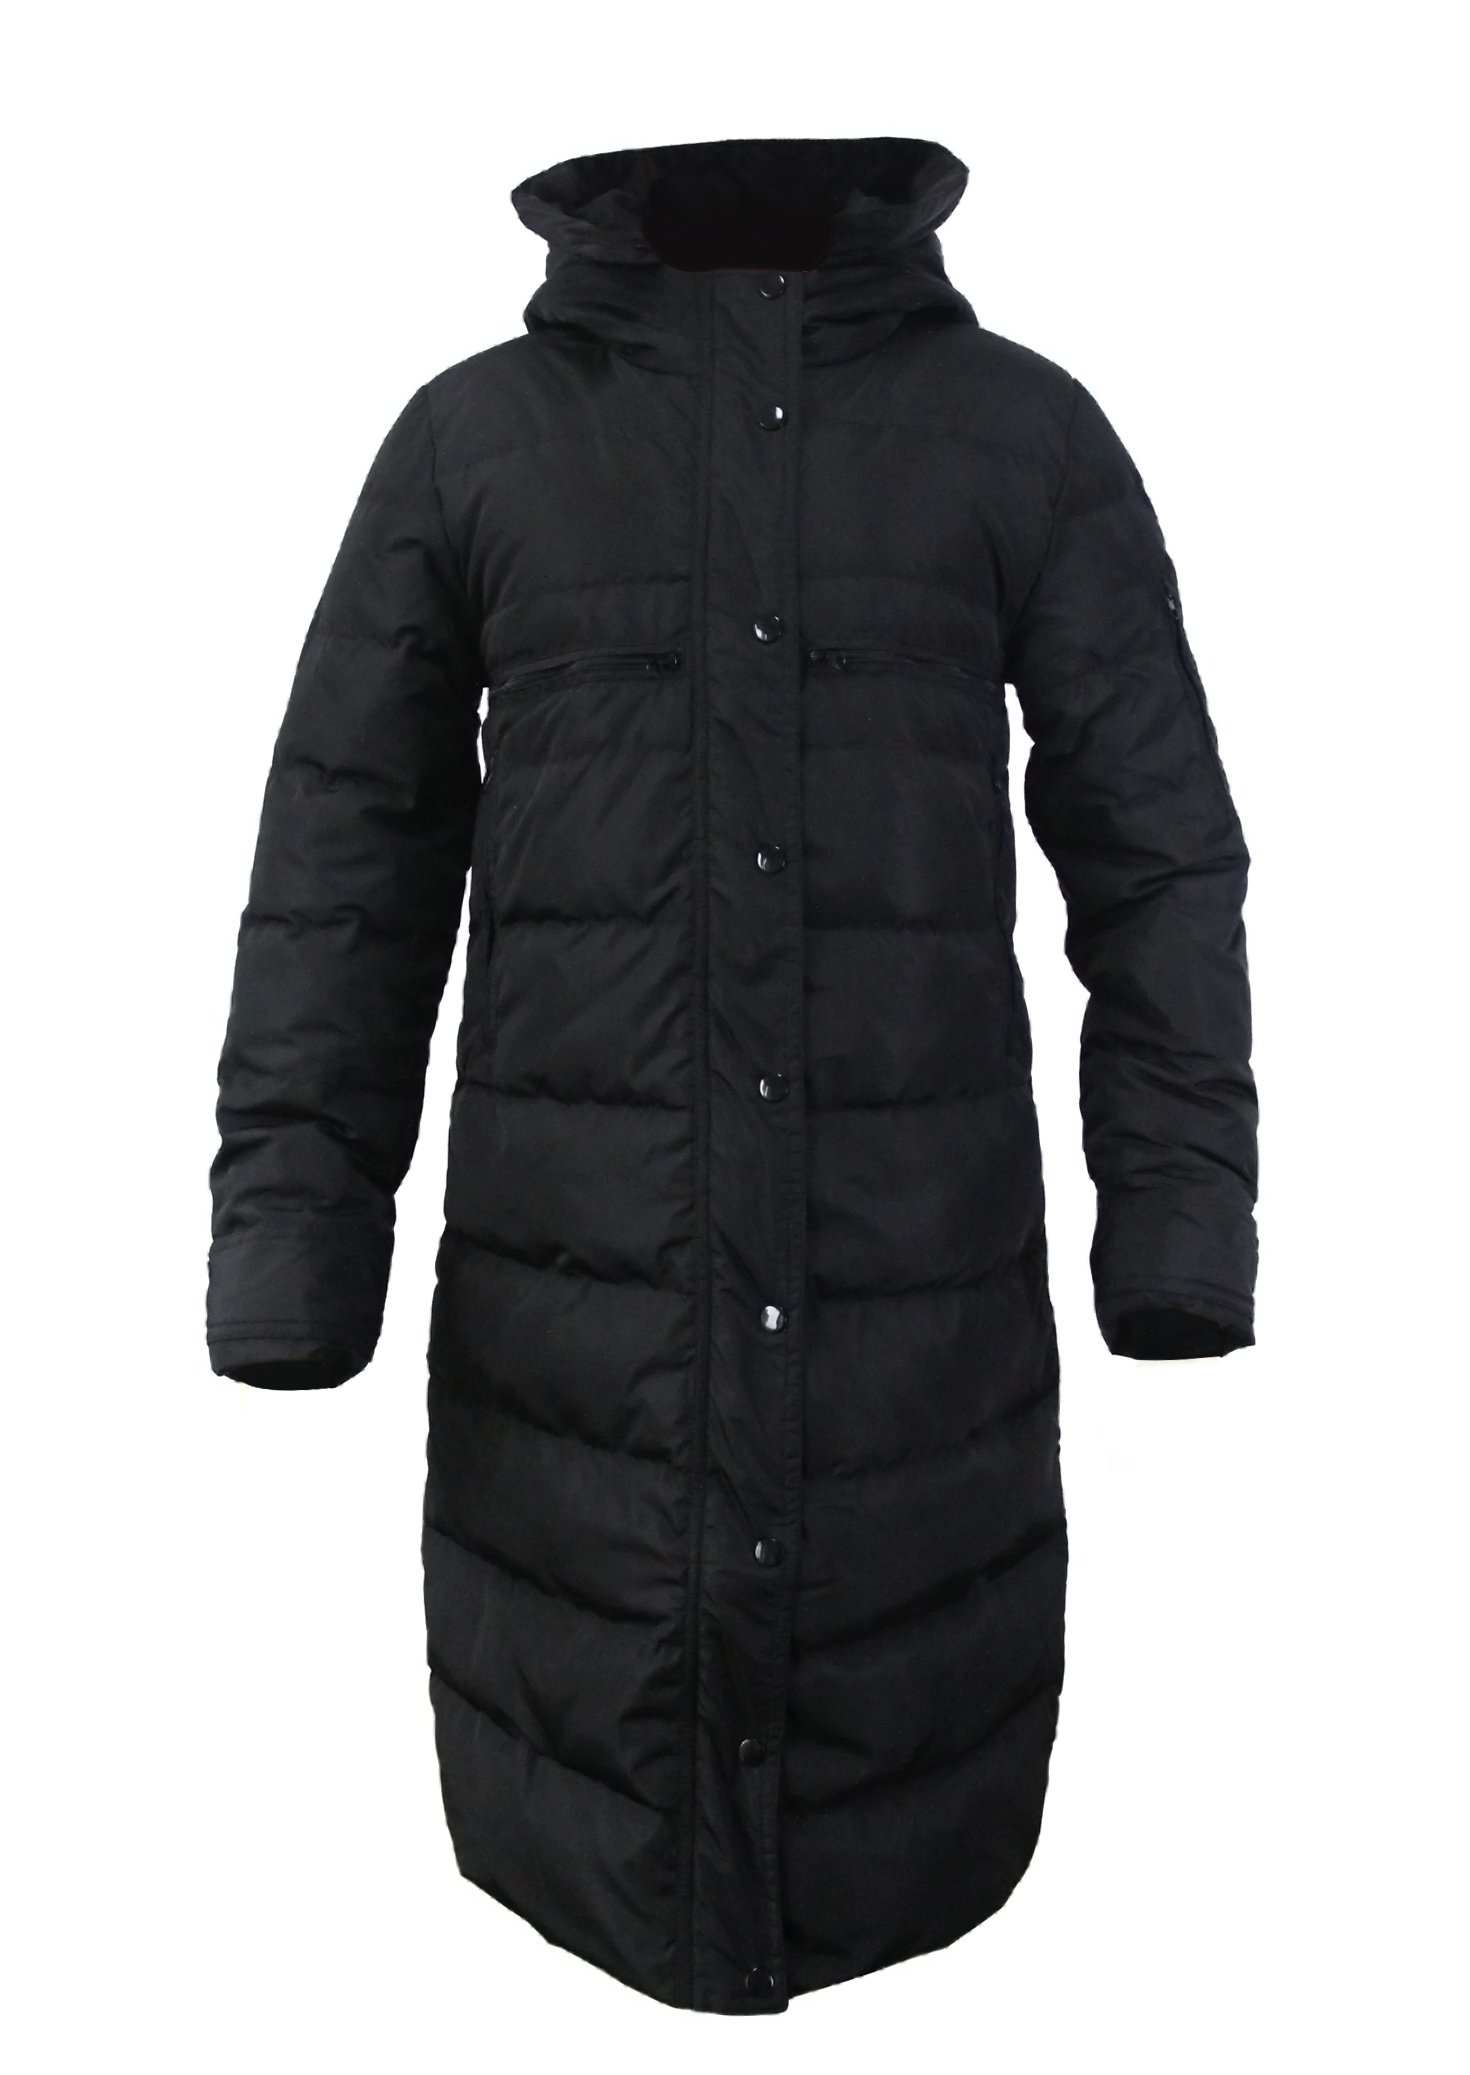 CHERRY CHICK Stock Clearance! Women's Slim Fit Long Down Jacket Coat with Hood (X-Large, Black)